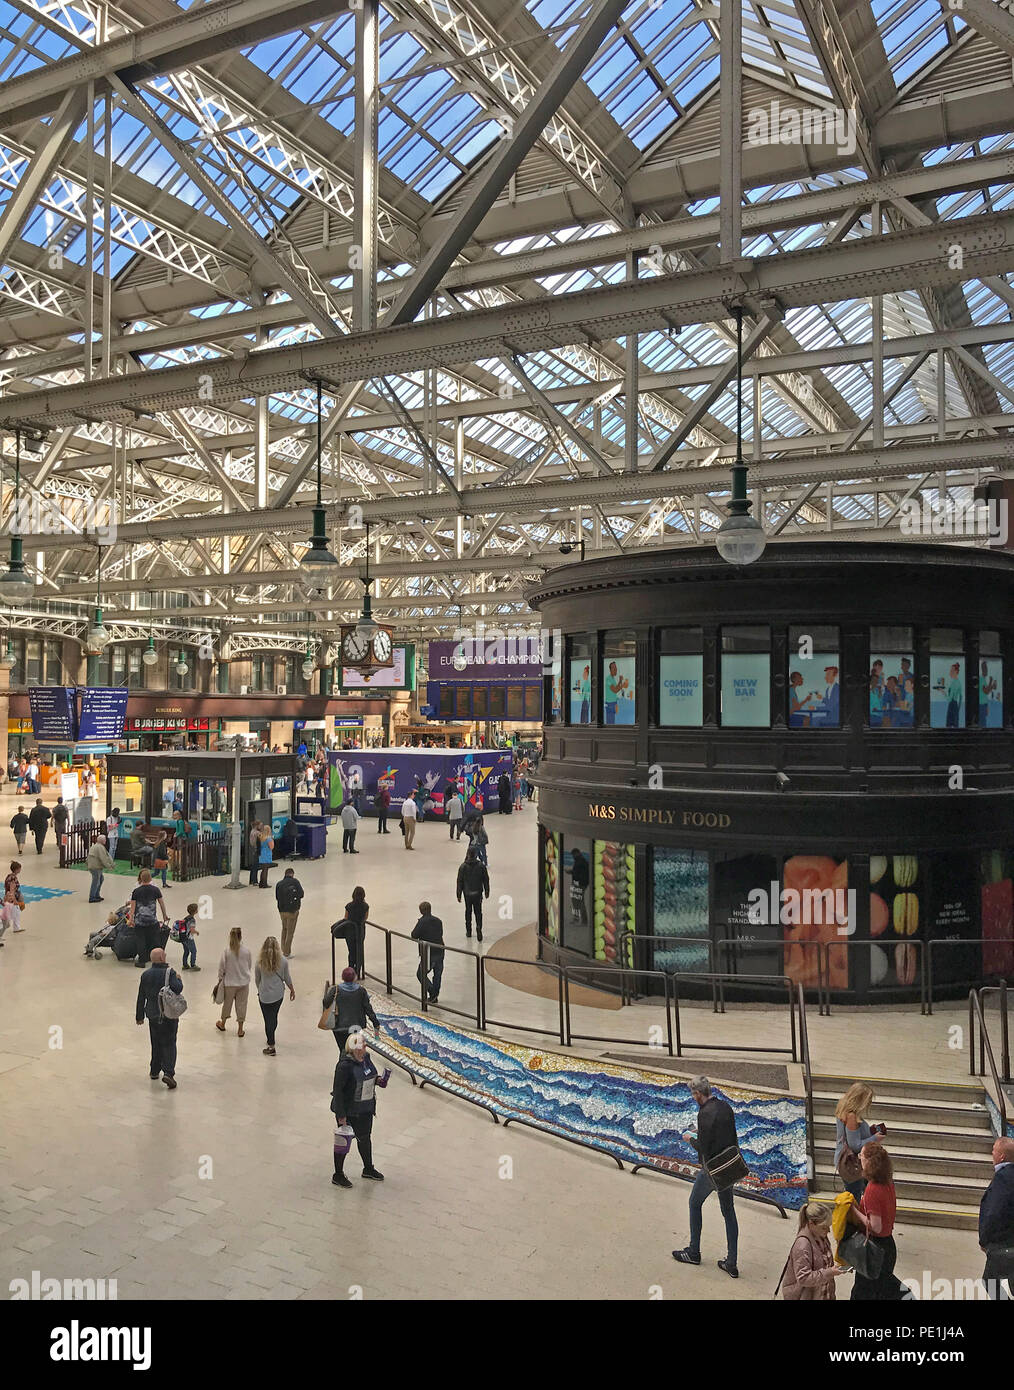 Glasgow Central Mainline Railway Station, Gordon Street, Glasgow, Scotland, UK - Stock Image